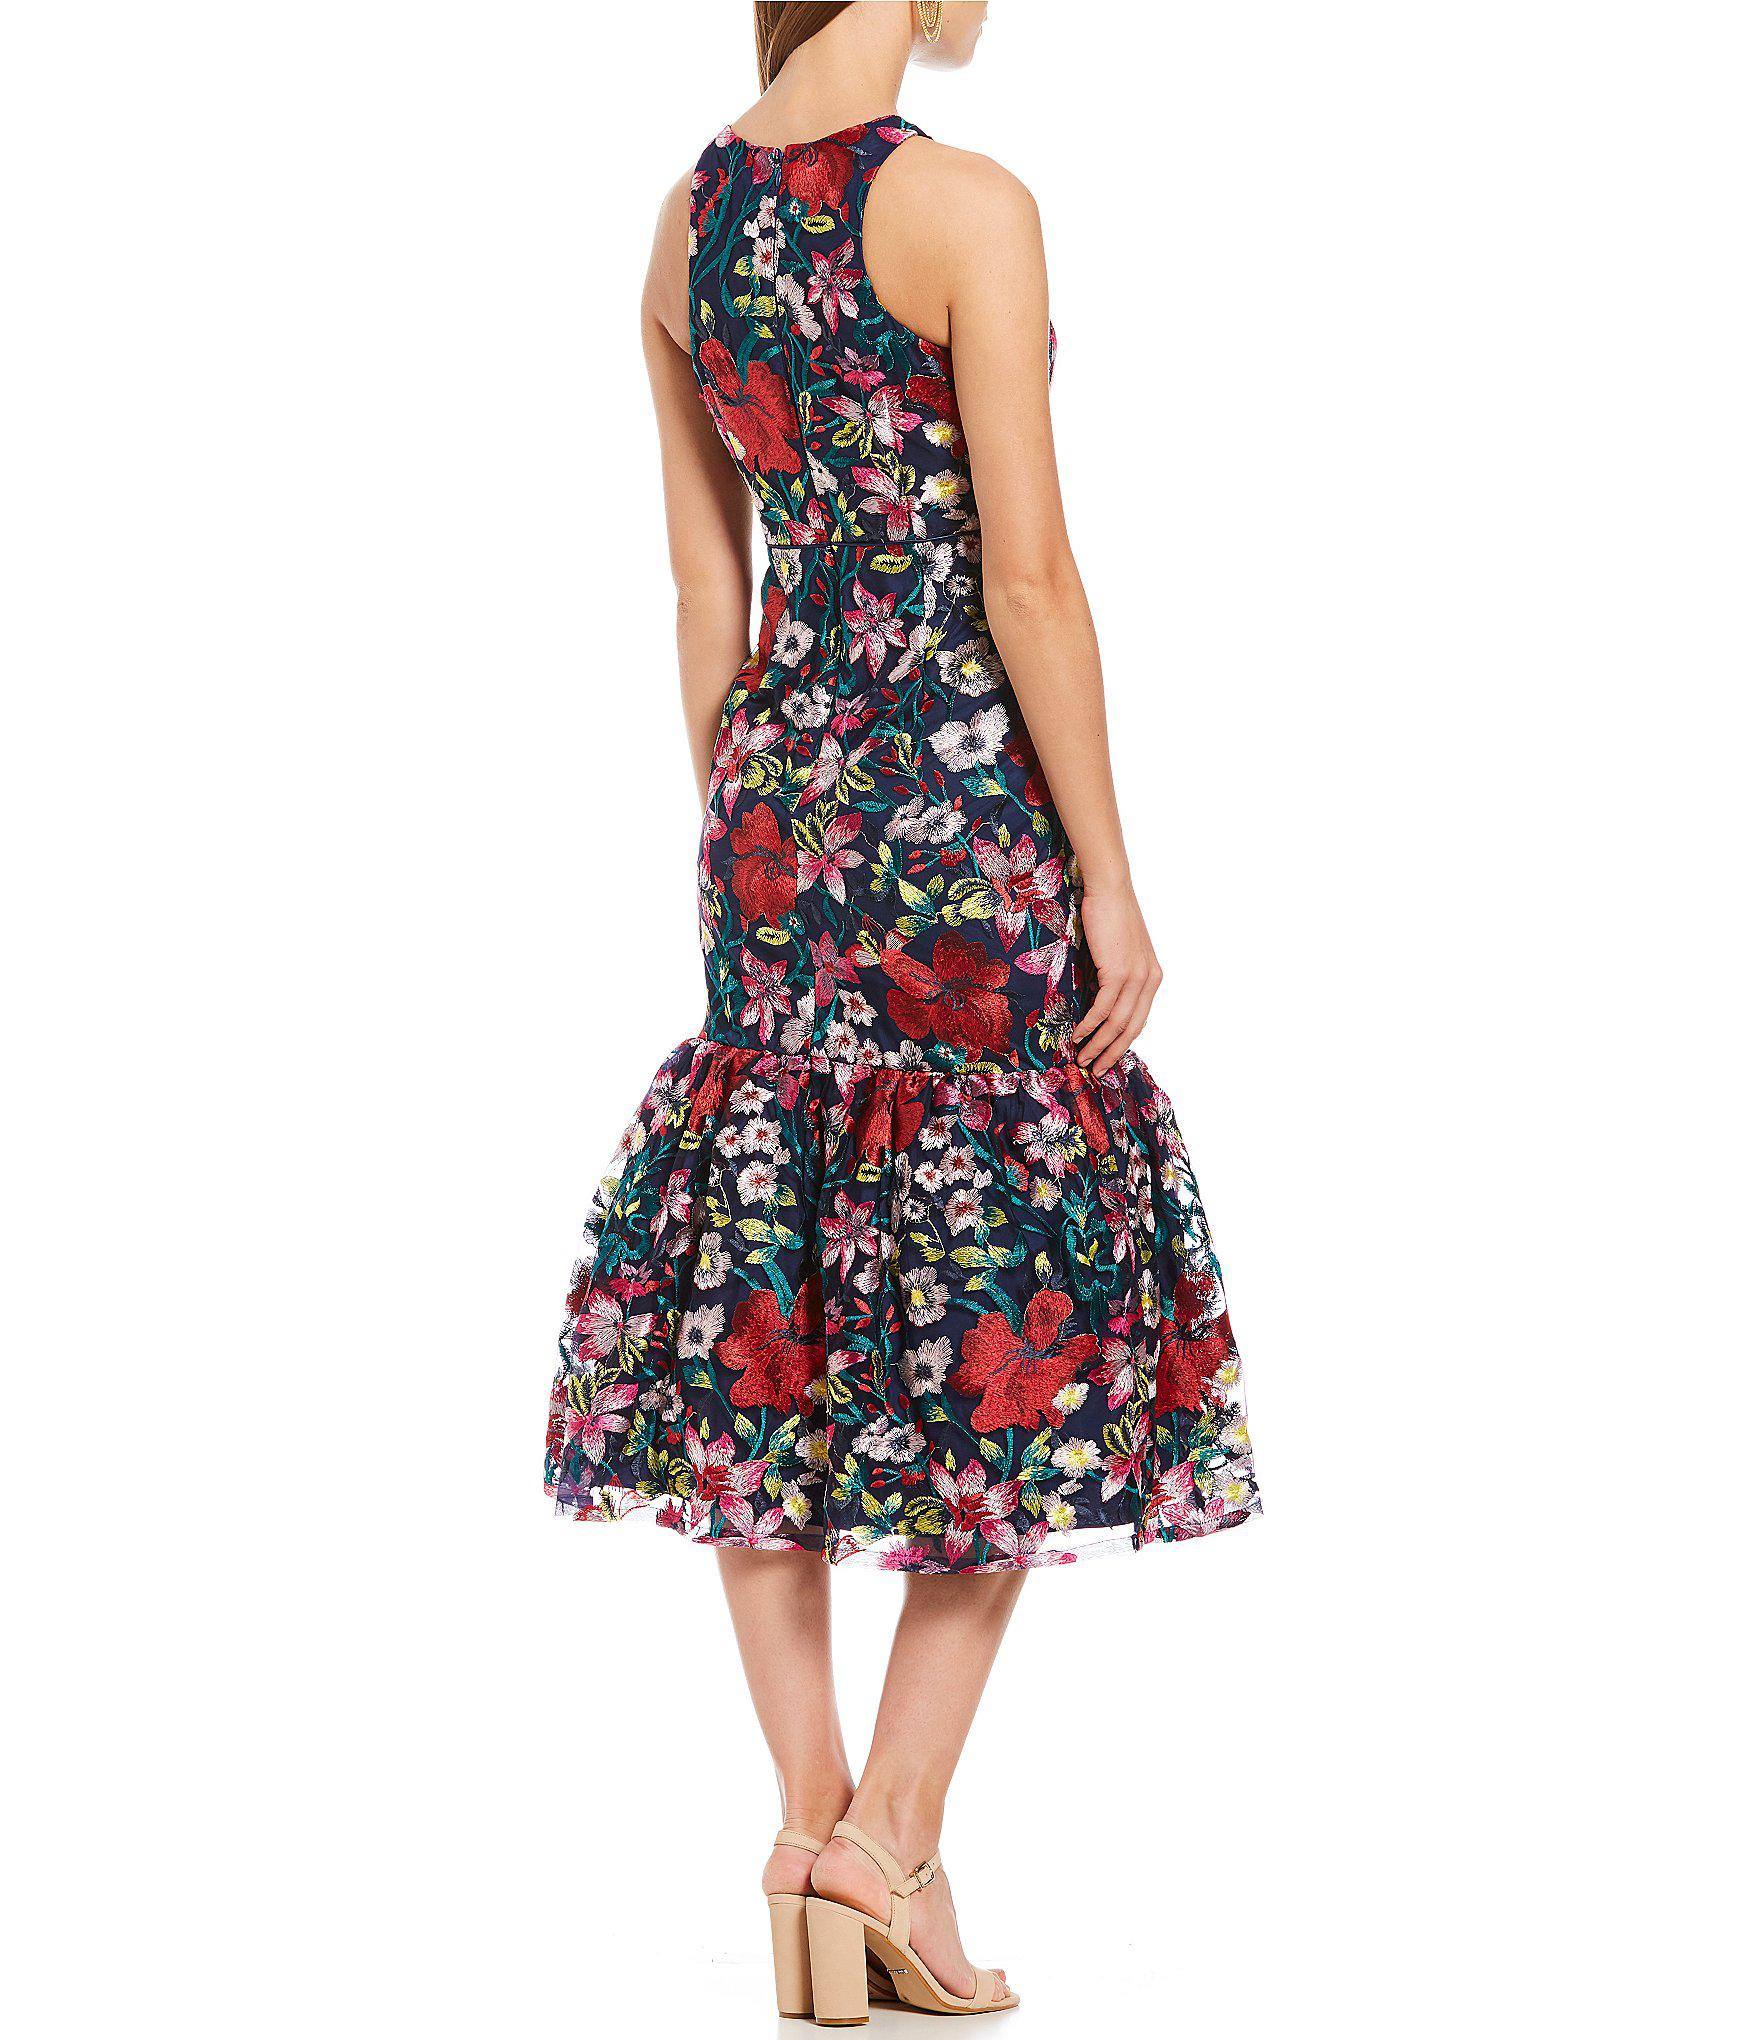 c89ef029c33 Gianni Bini Misty Floral Embroidered Fluted Midi Dress in Pink - Lyst